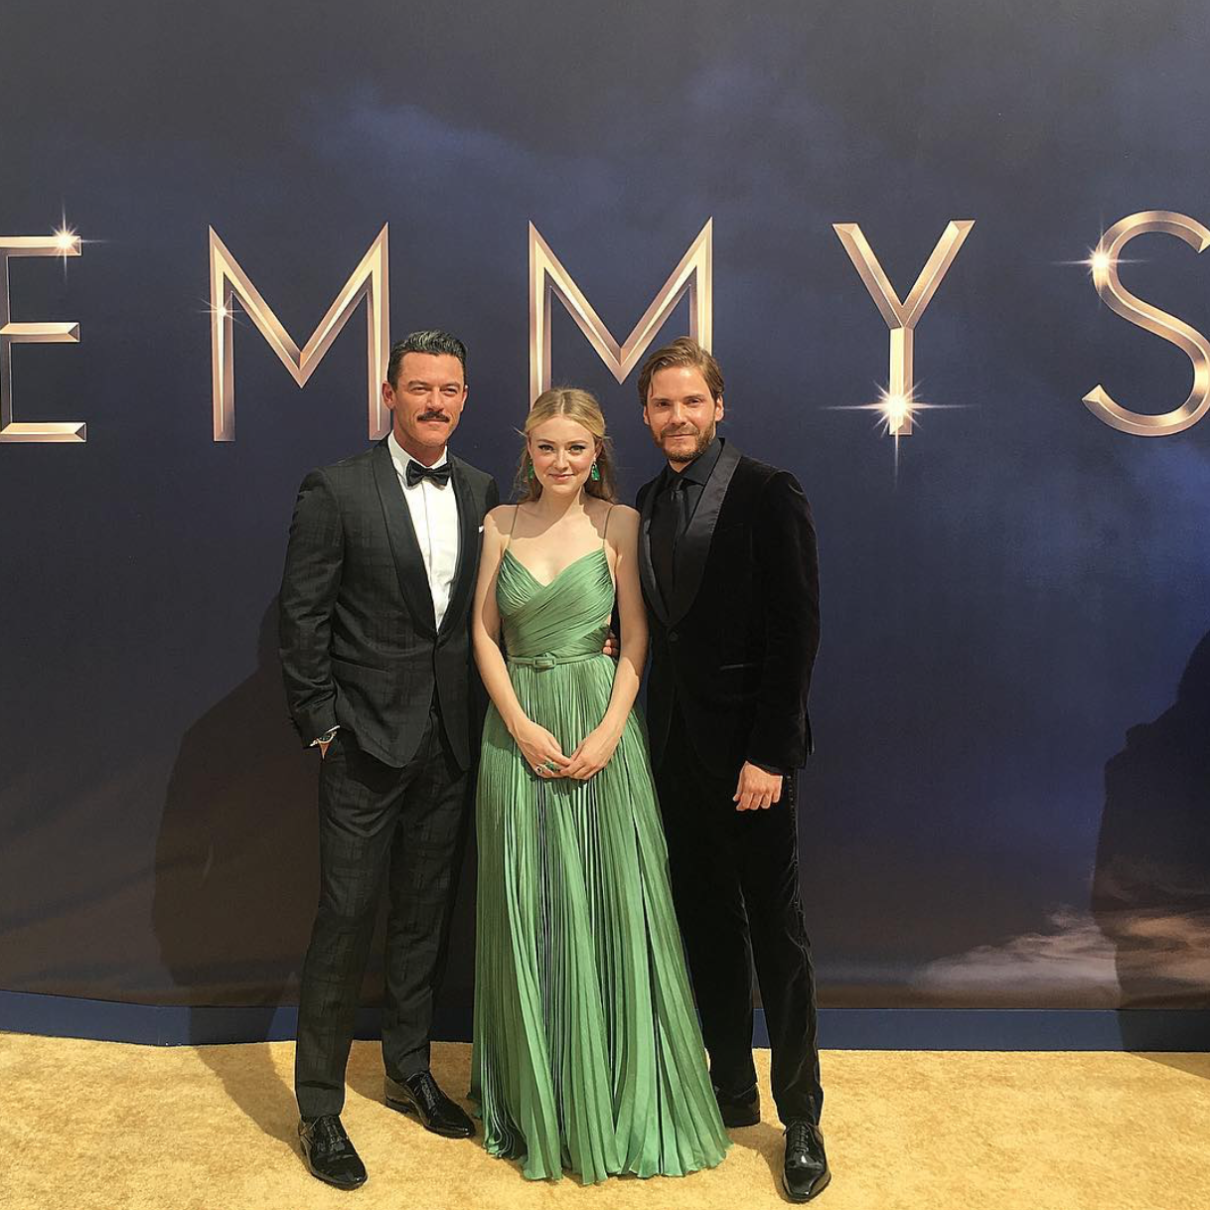 """""""My Gang @dakotafanning @thedanielbruhl @suspensetnt #thealienist #emmys""""   Luke Evans, who posted this snap on Sept. 17, 2018."""